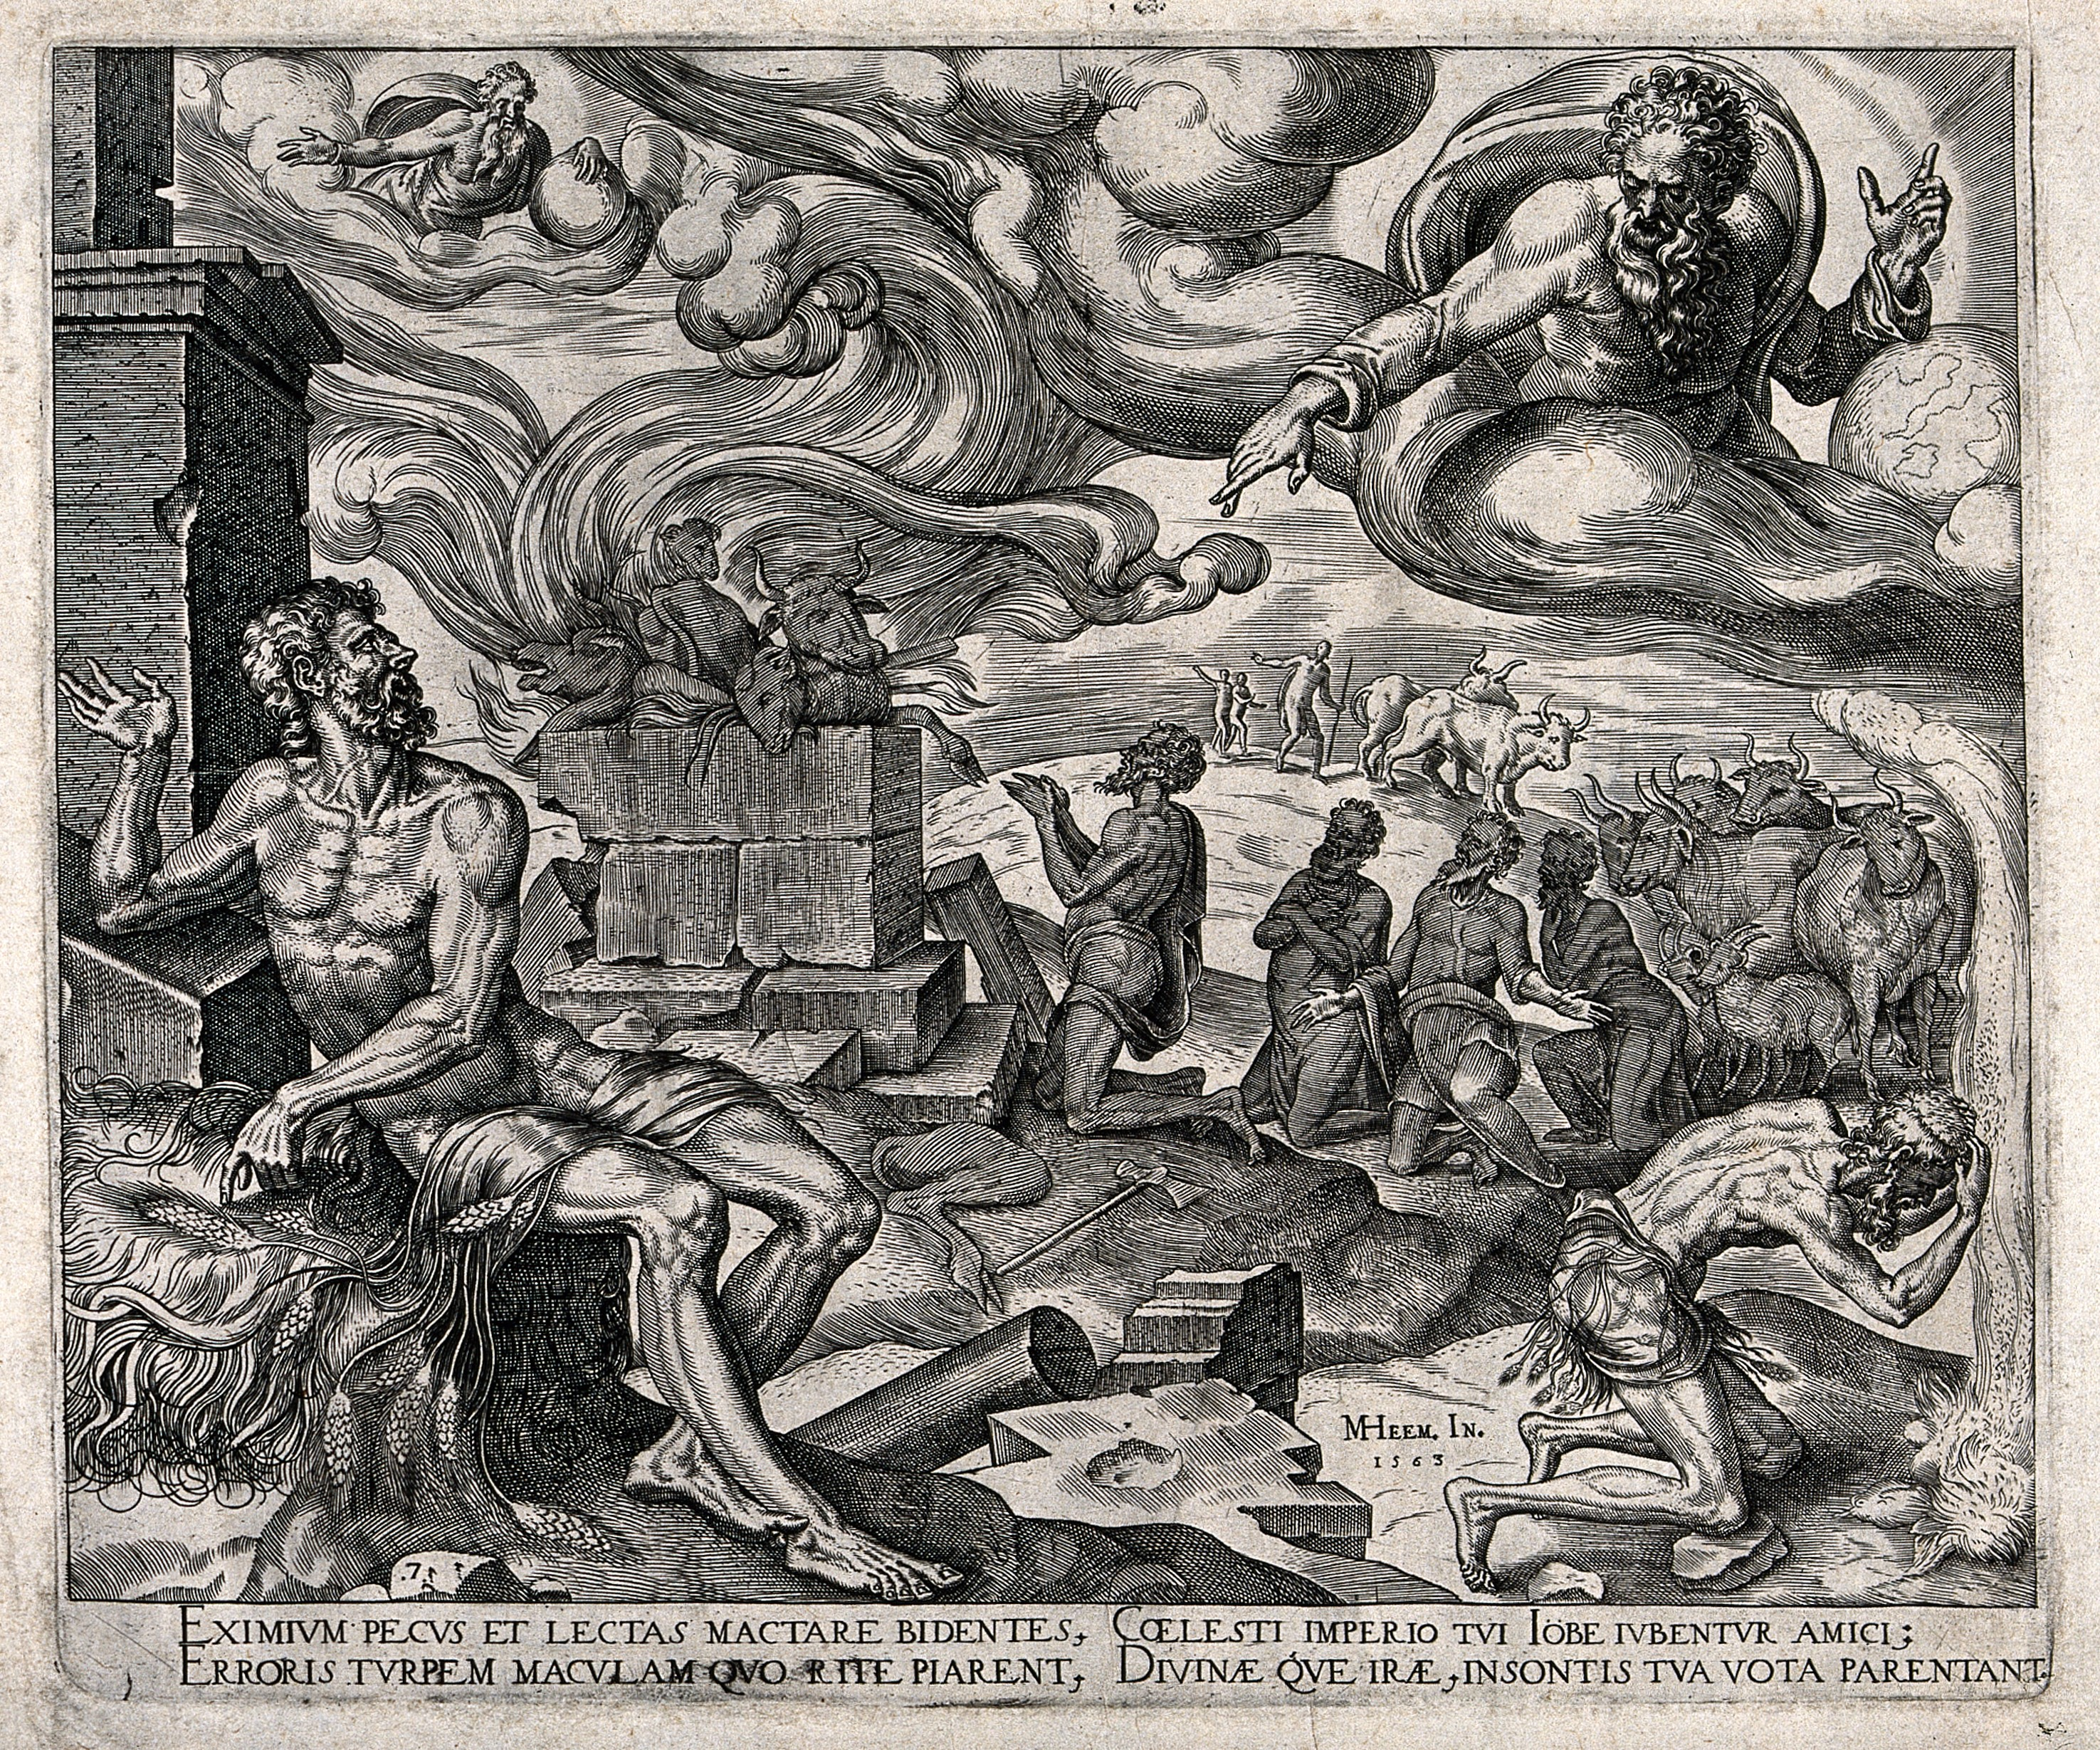 File:The torments of Job under a swirling sky dominated by God. E Wellcome V0034340.jpg From Wikimedia Commons, the free media repository